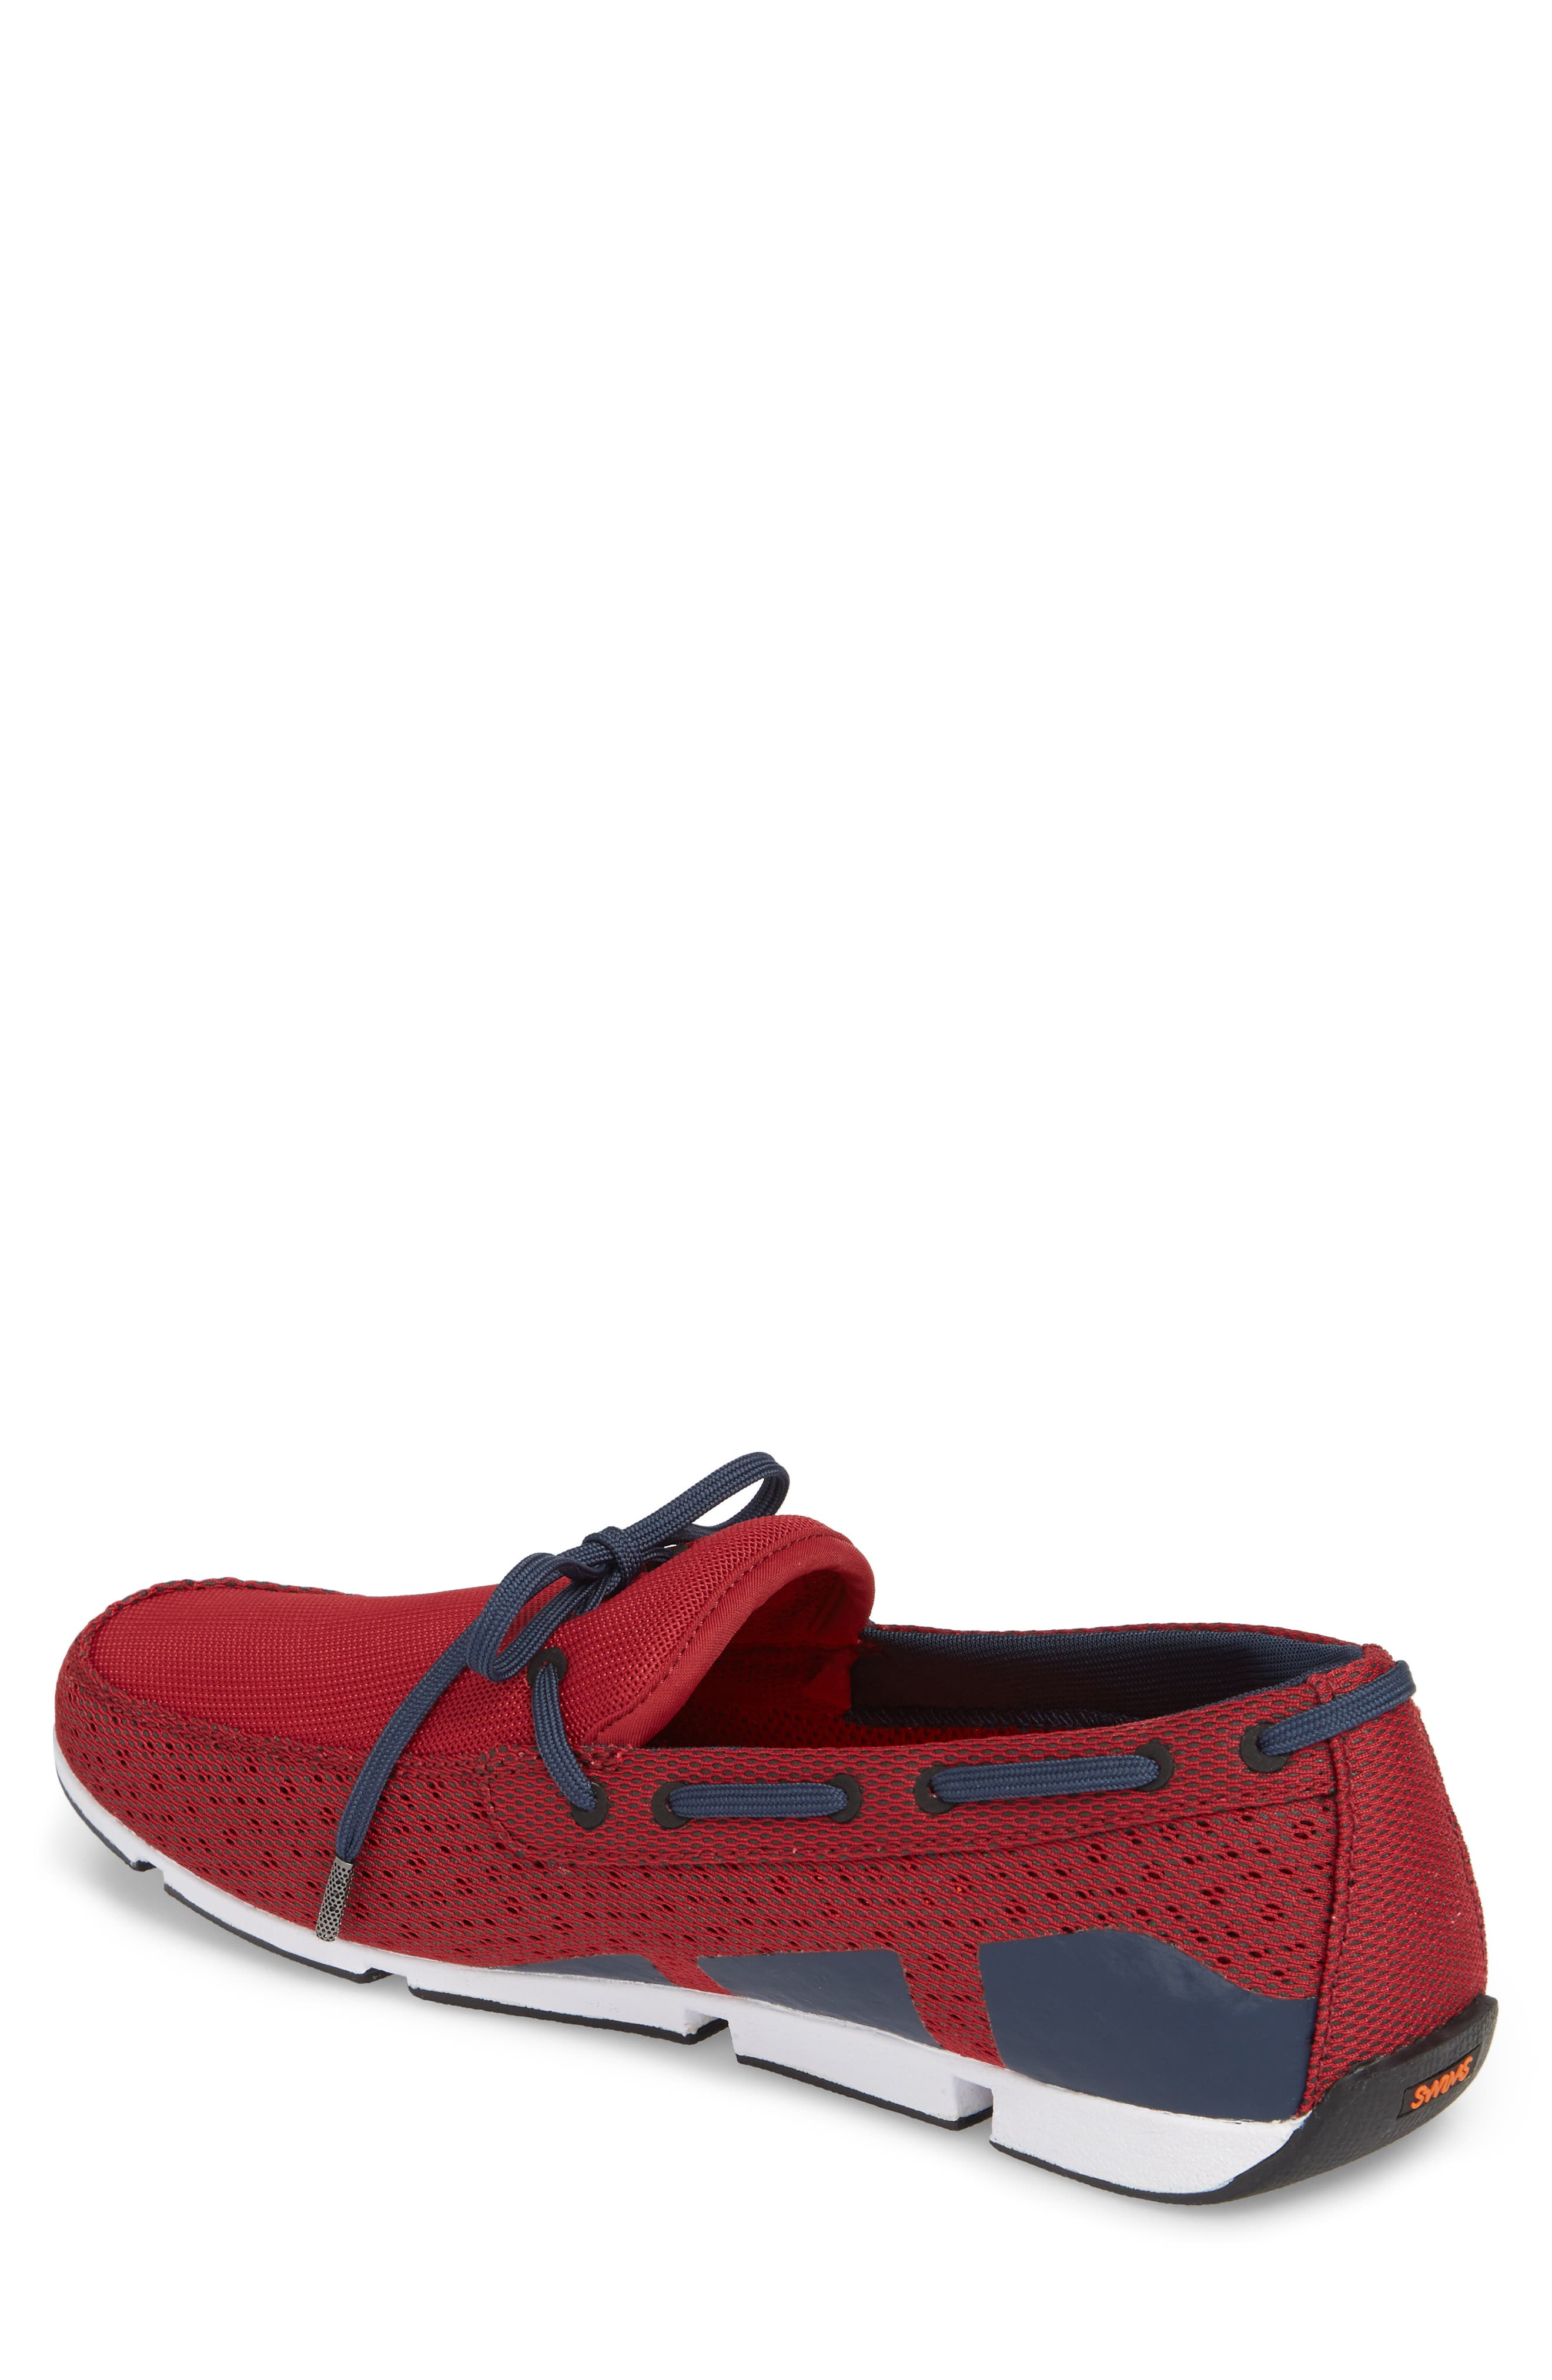 Breeze Loafer,                             Alternate thumbnail 2, color,                             Deep Red/ Navy/ White